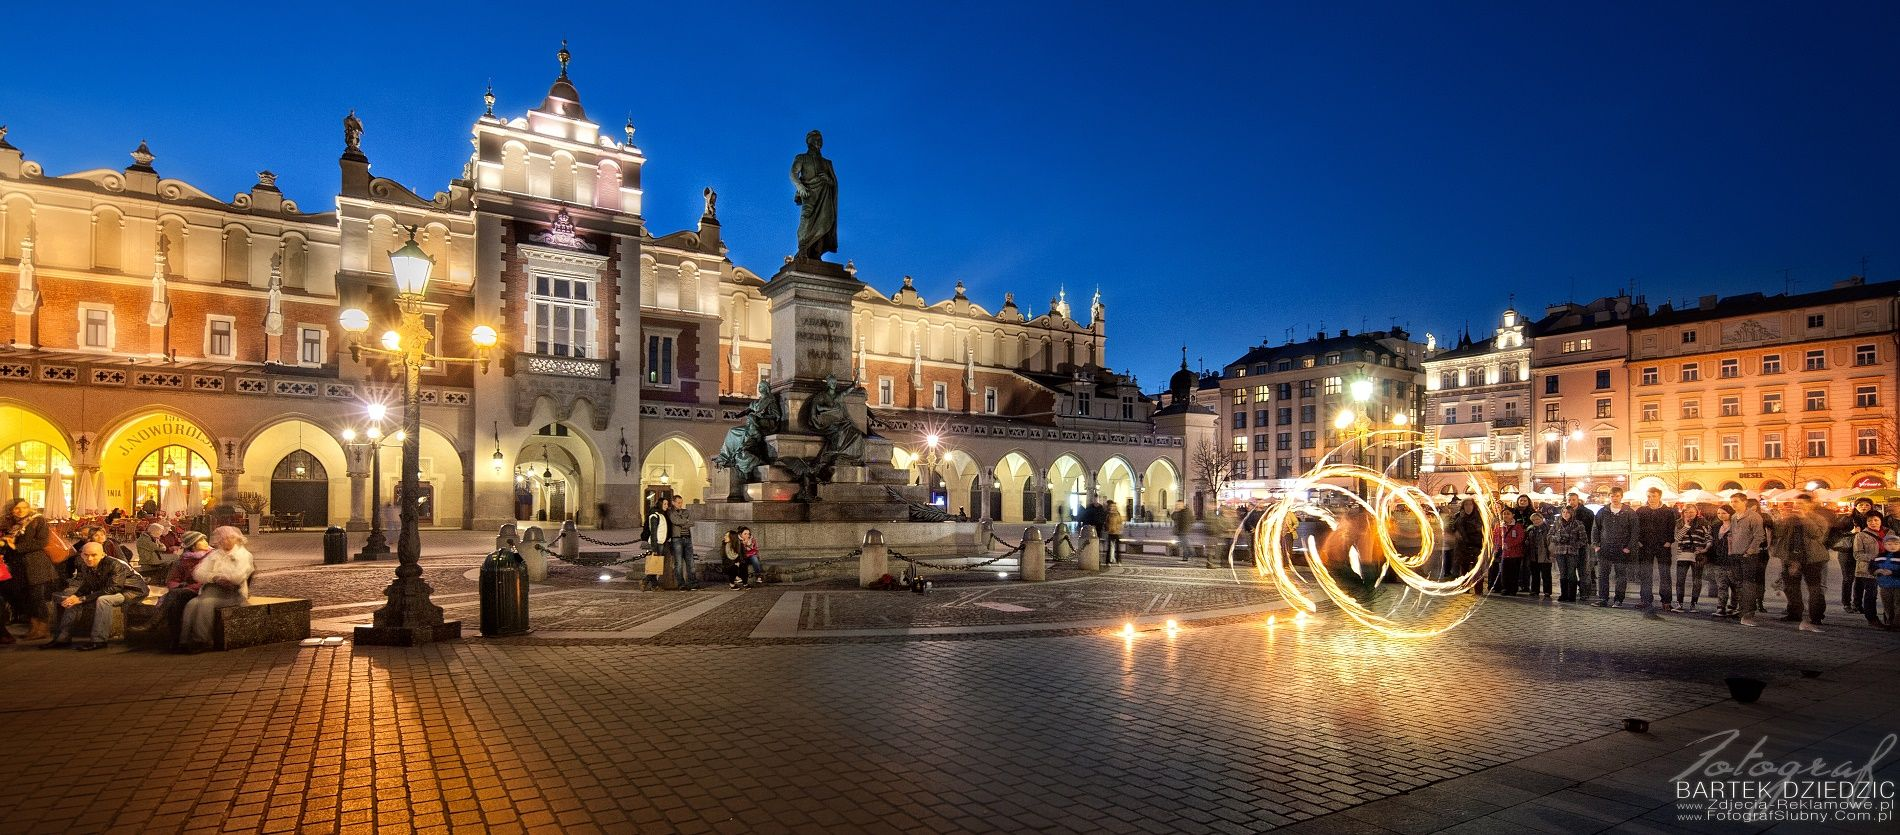 Night in Cracow  krakow, cracow, krakov, poland, church, market square, places, tourism, spire, europe #cracow #poland #fotograf #event